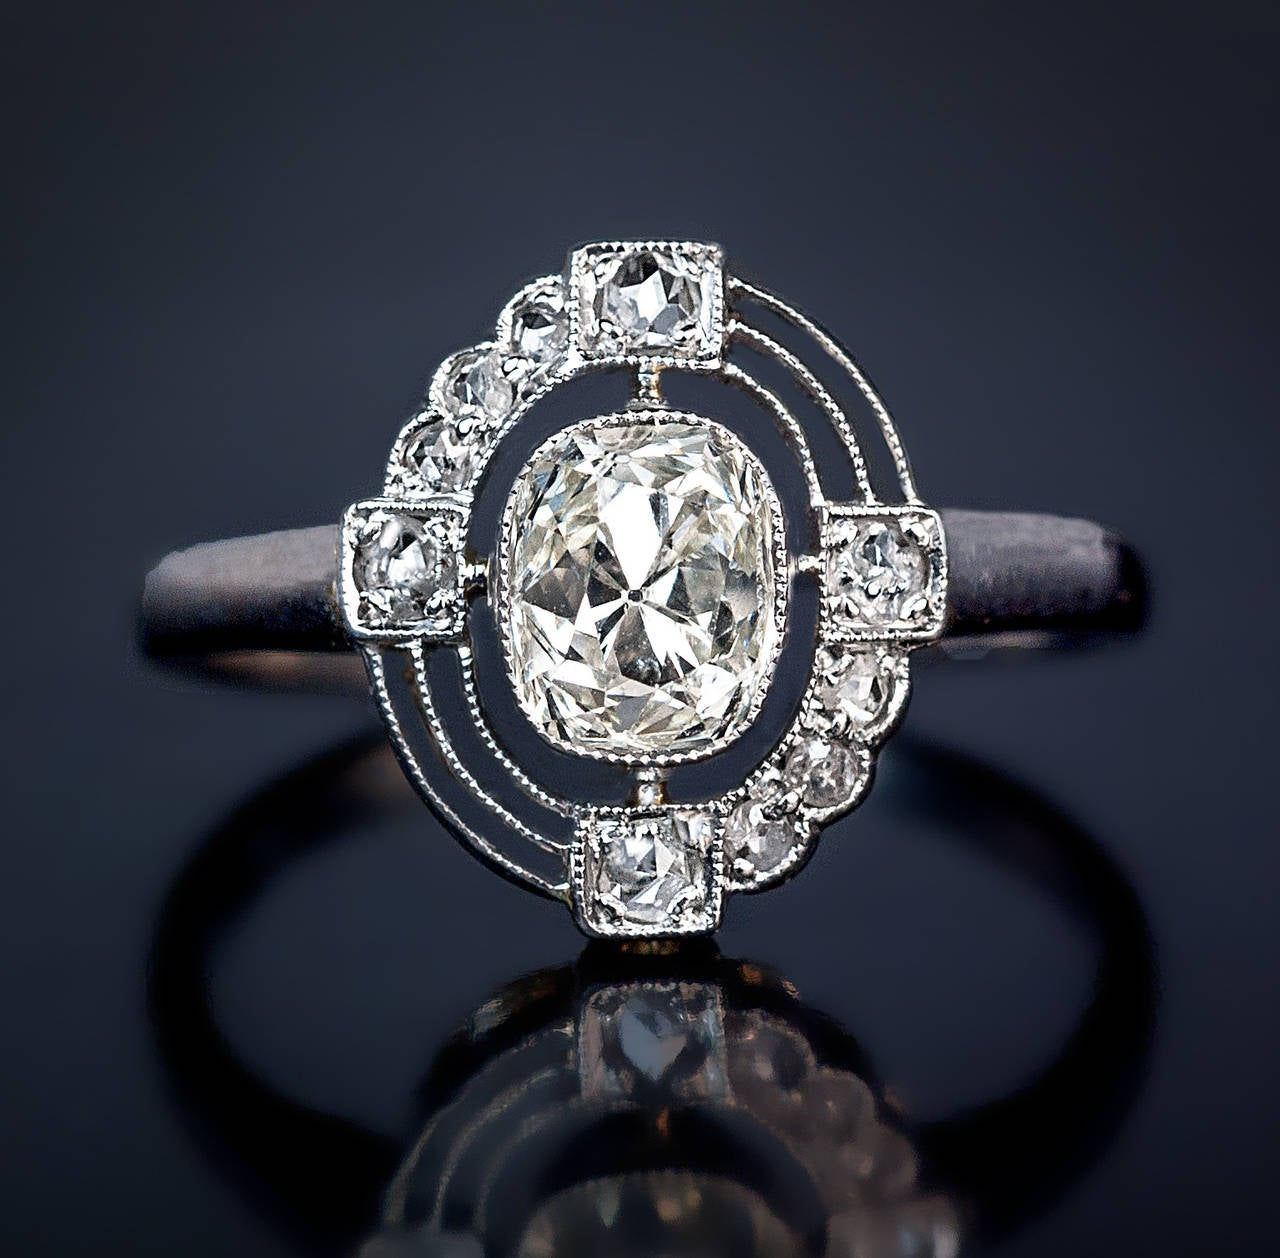 asymmetrical harriet kelsall engagement ring rings